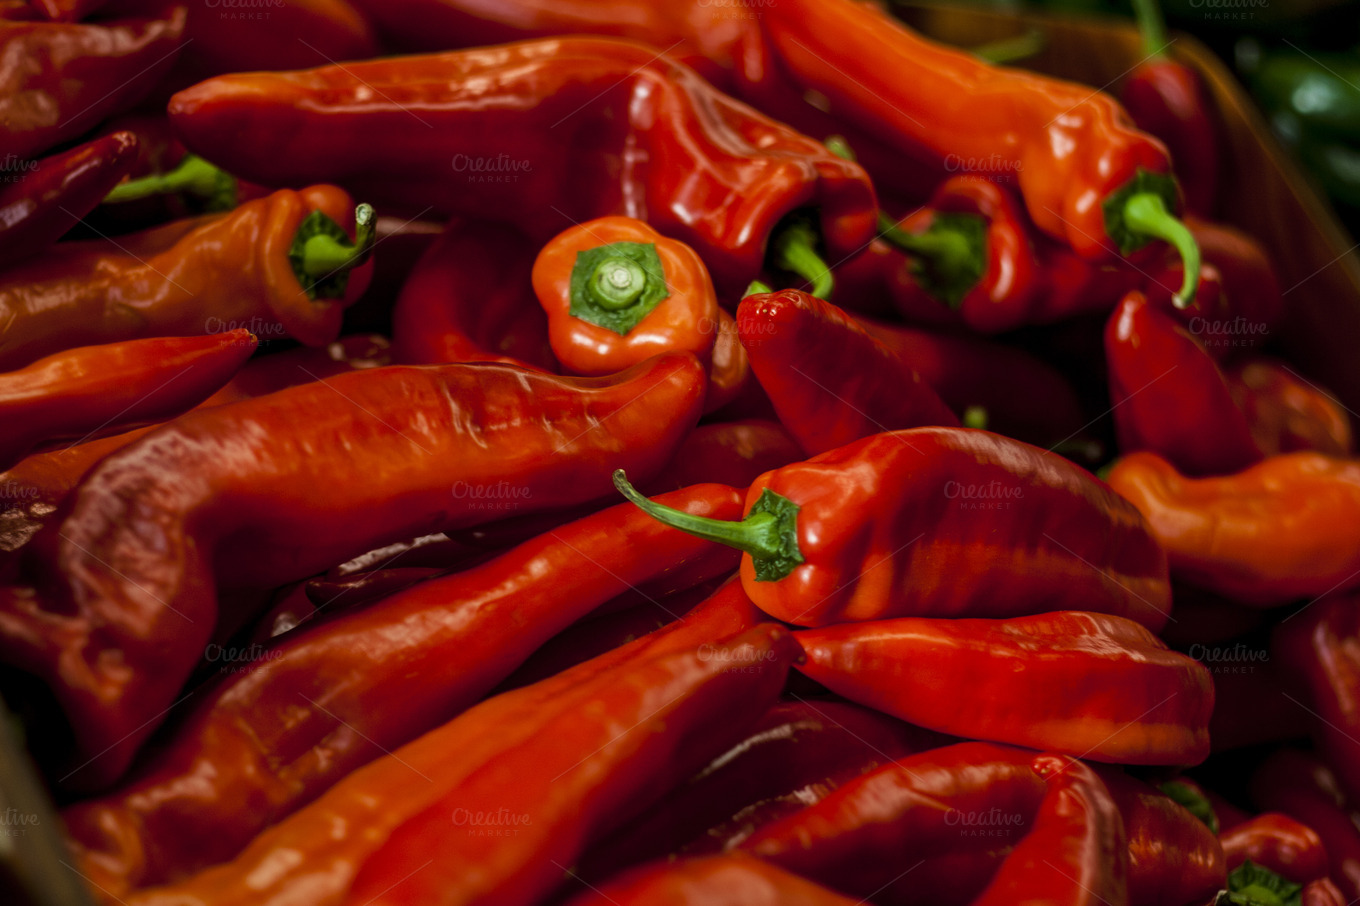 Bright red chile peppers ~ Food & Drink Photos on Creative Market